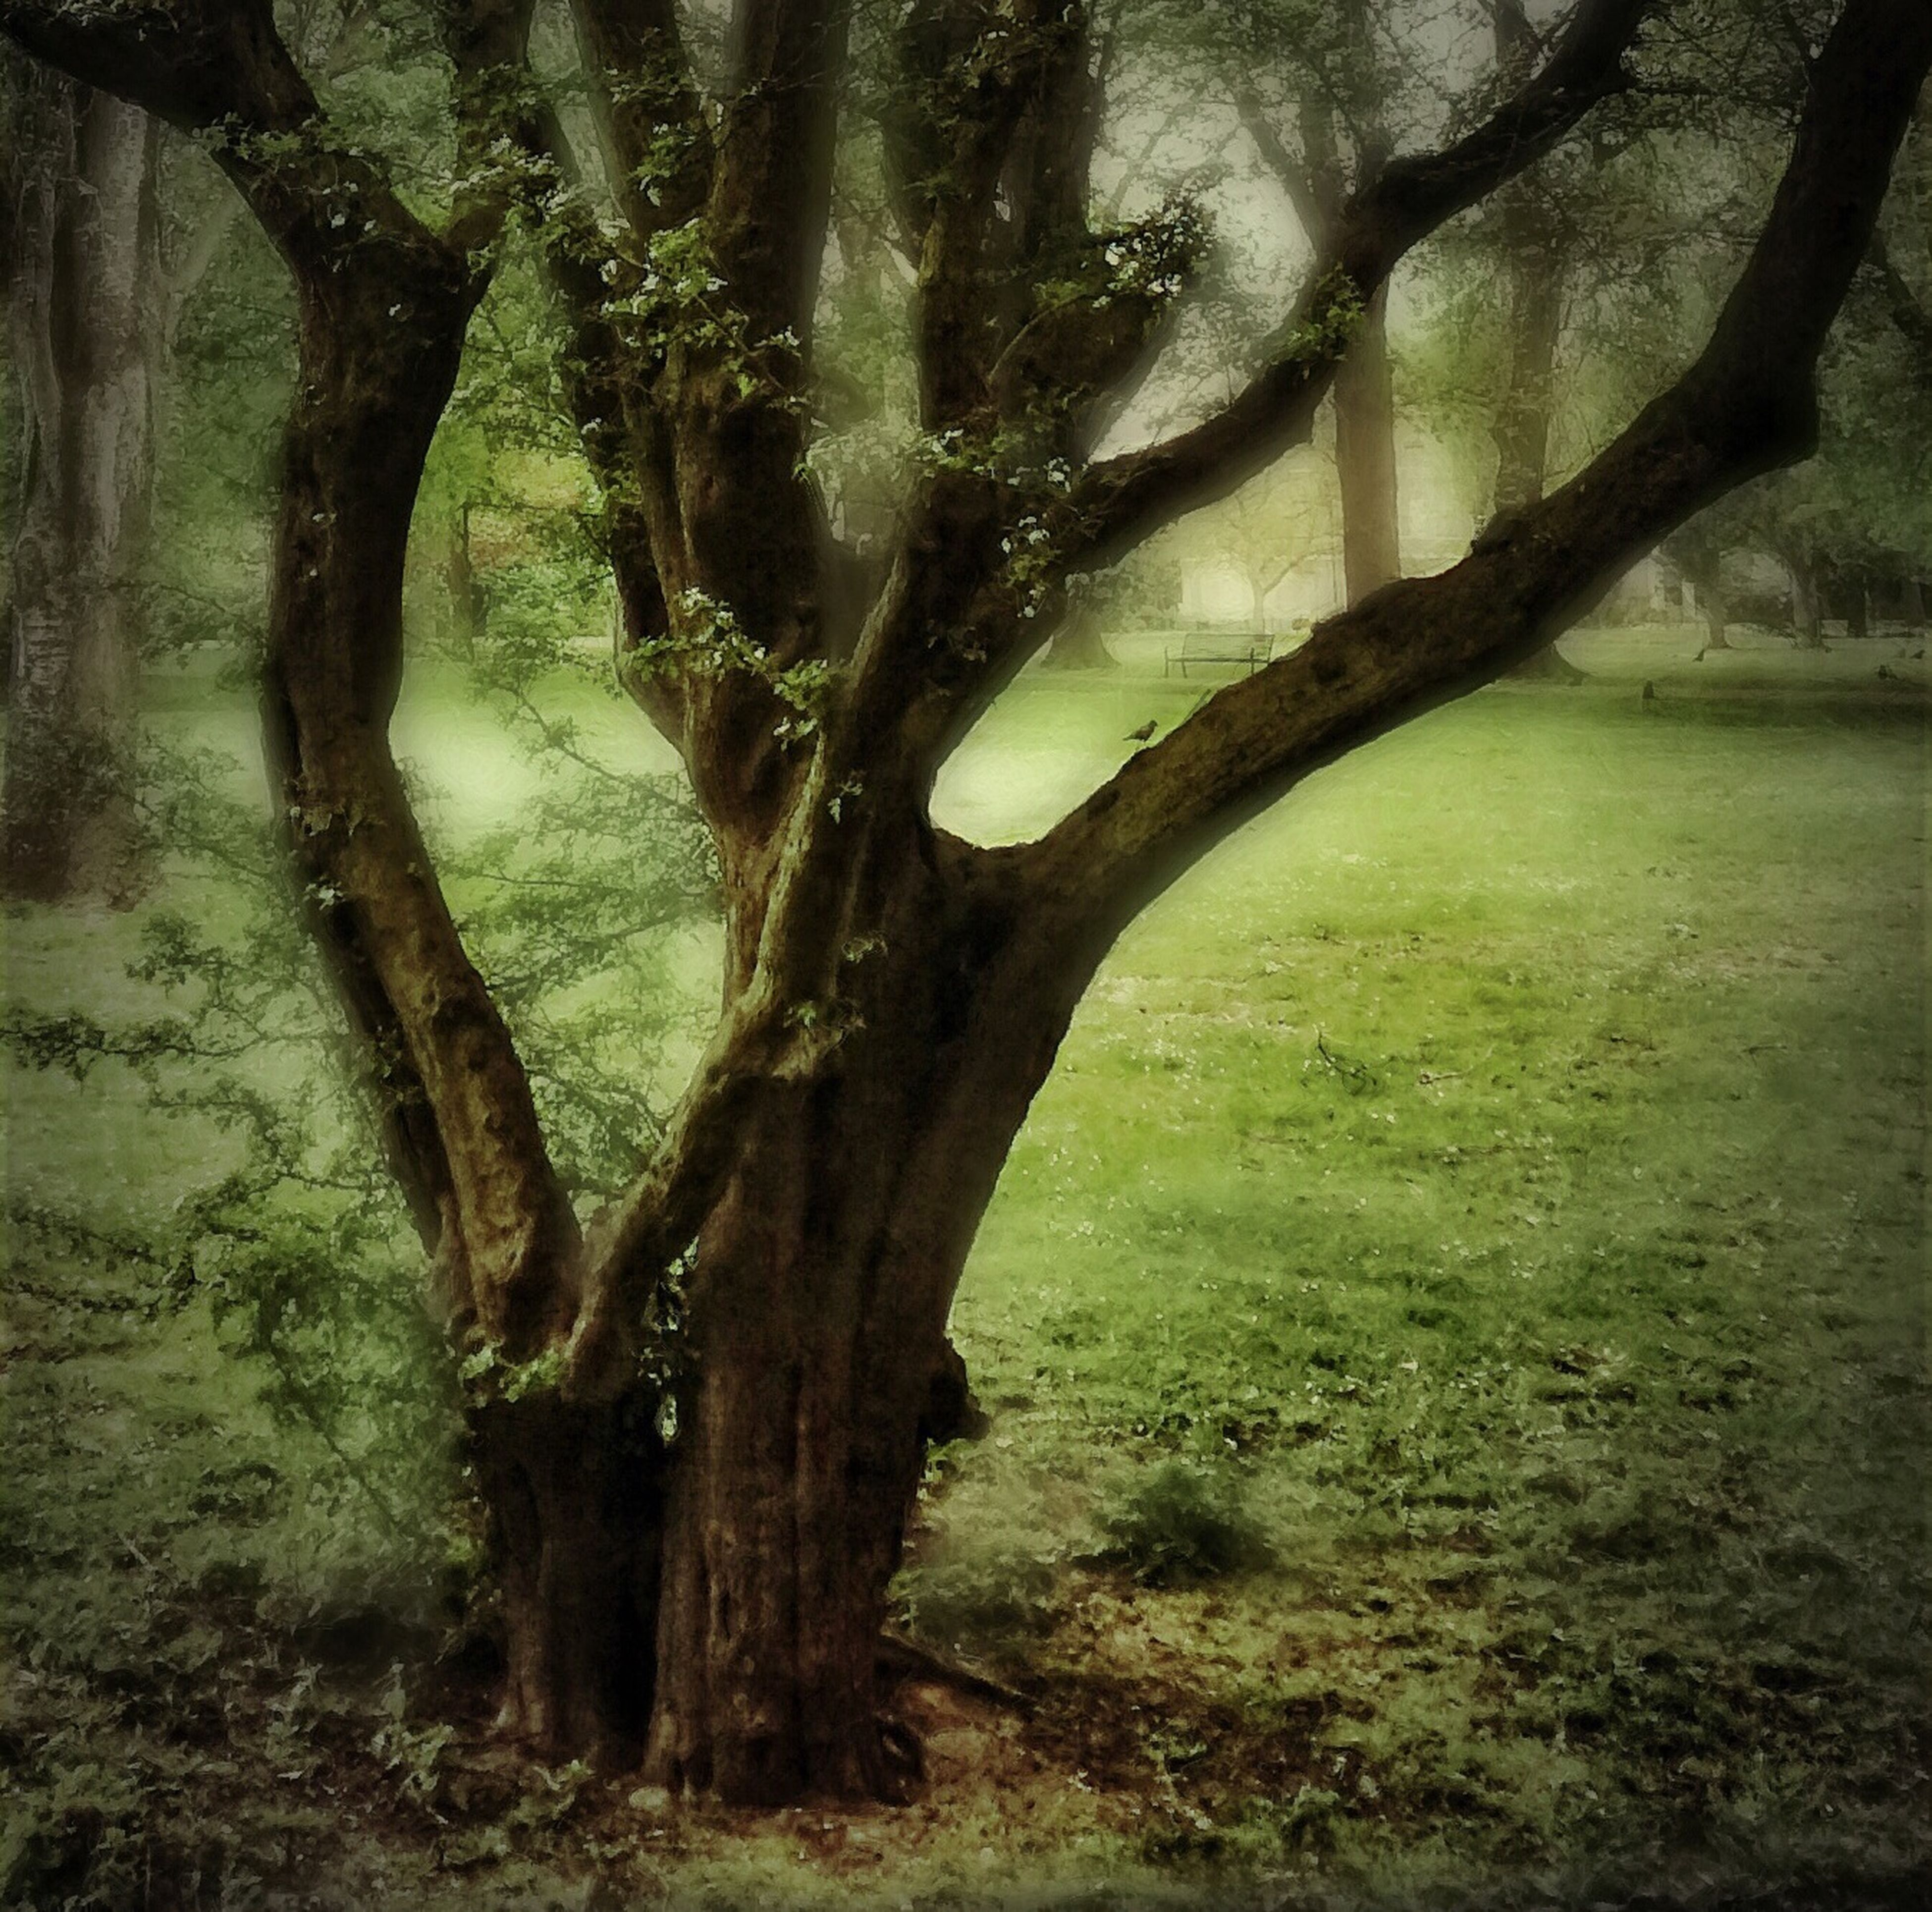 tree, tree trunk, tranquility, tranquil scene, branch, nature, growth, landscape, scenics, beauty in nature, grass, field, forest, bare tree, non-urban scene, woodland, sunlight, no people, idyllic, day